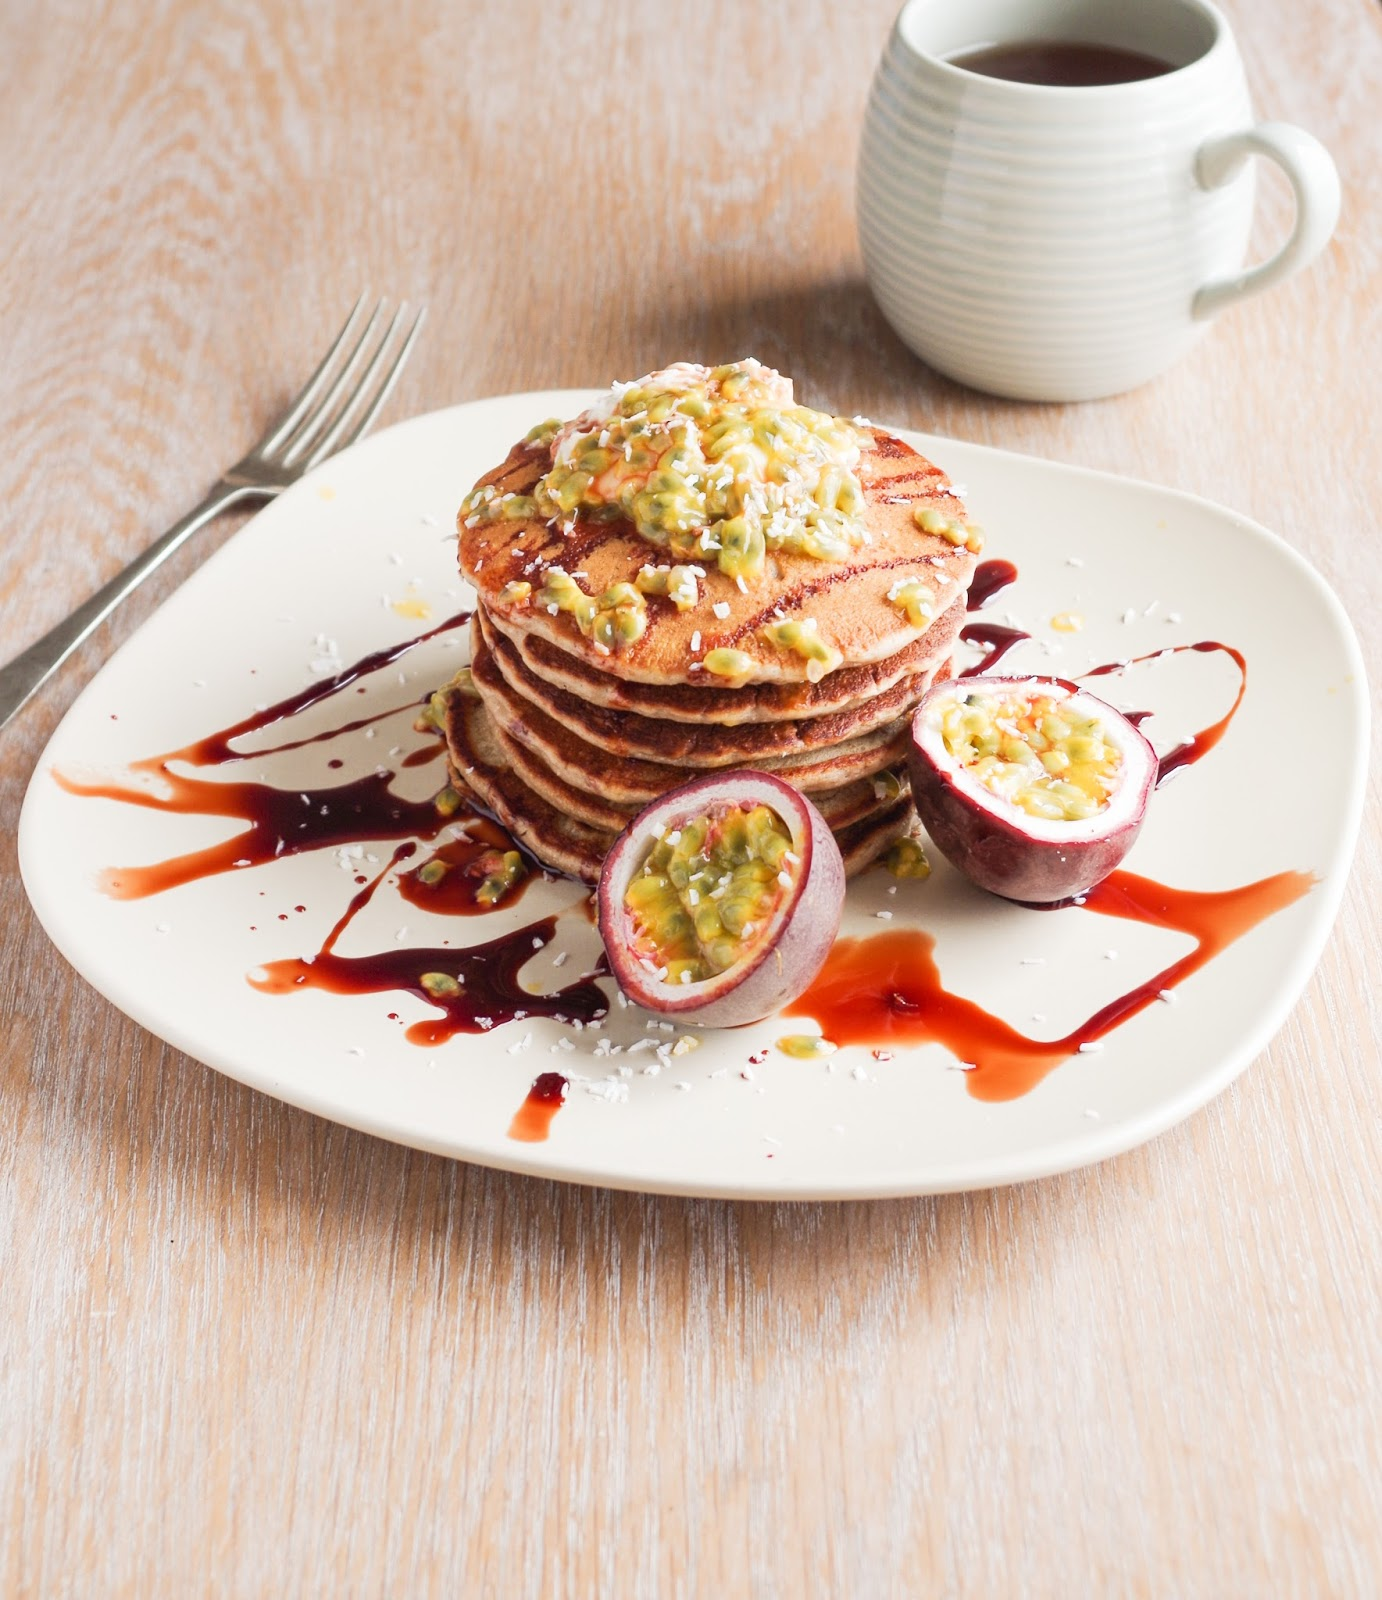 Banana coconut pancakes with passion fruit euphoric vegan pancakes the perfect weekend breakfast food all fluffy and delicious topped with fruit and syrup the best thing about pancakes is that you can make them ccuart Choice Image